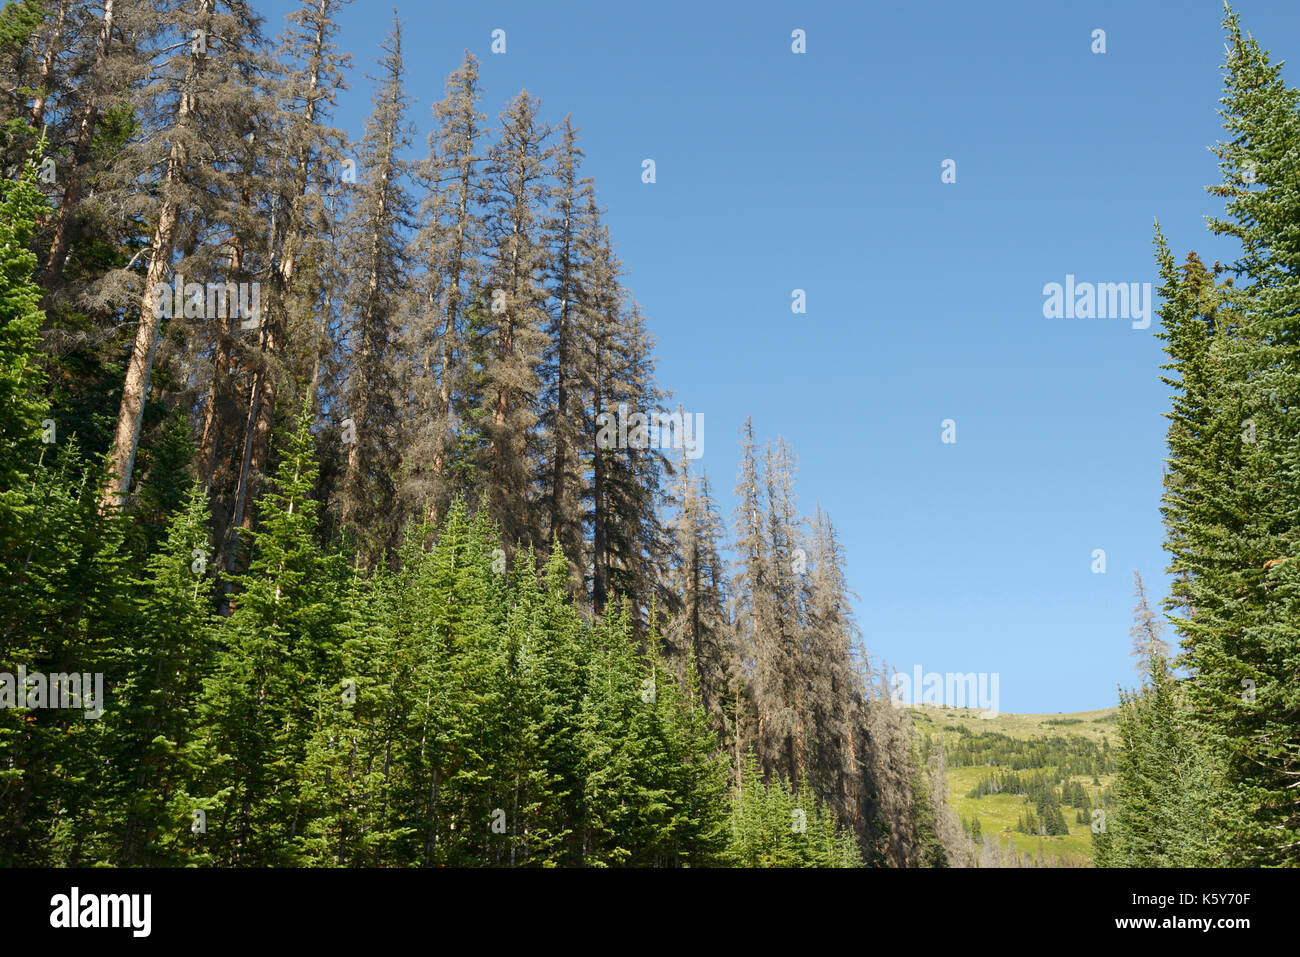 Spruce trees damaged and killed by spruce beetle, Dendroctonus rufipennis, Rocky Mountain National Park, Colorado - Stock Image